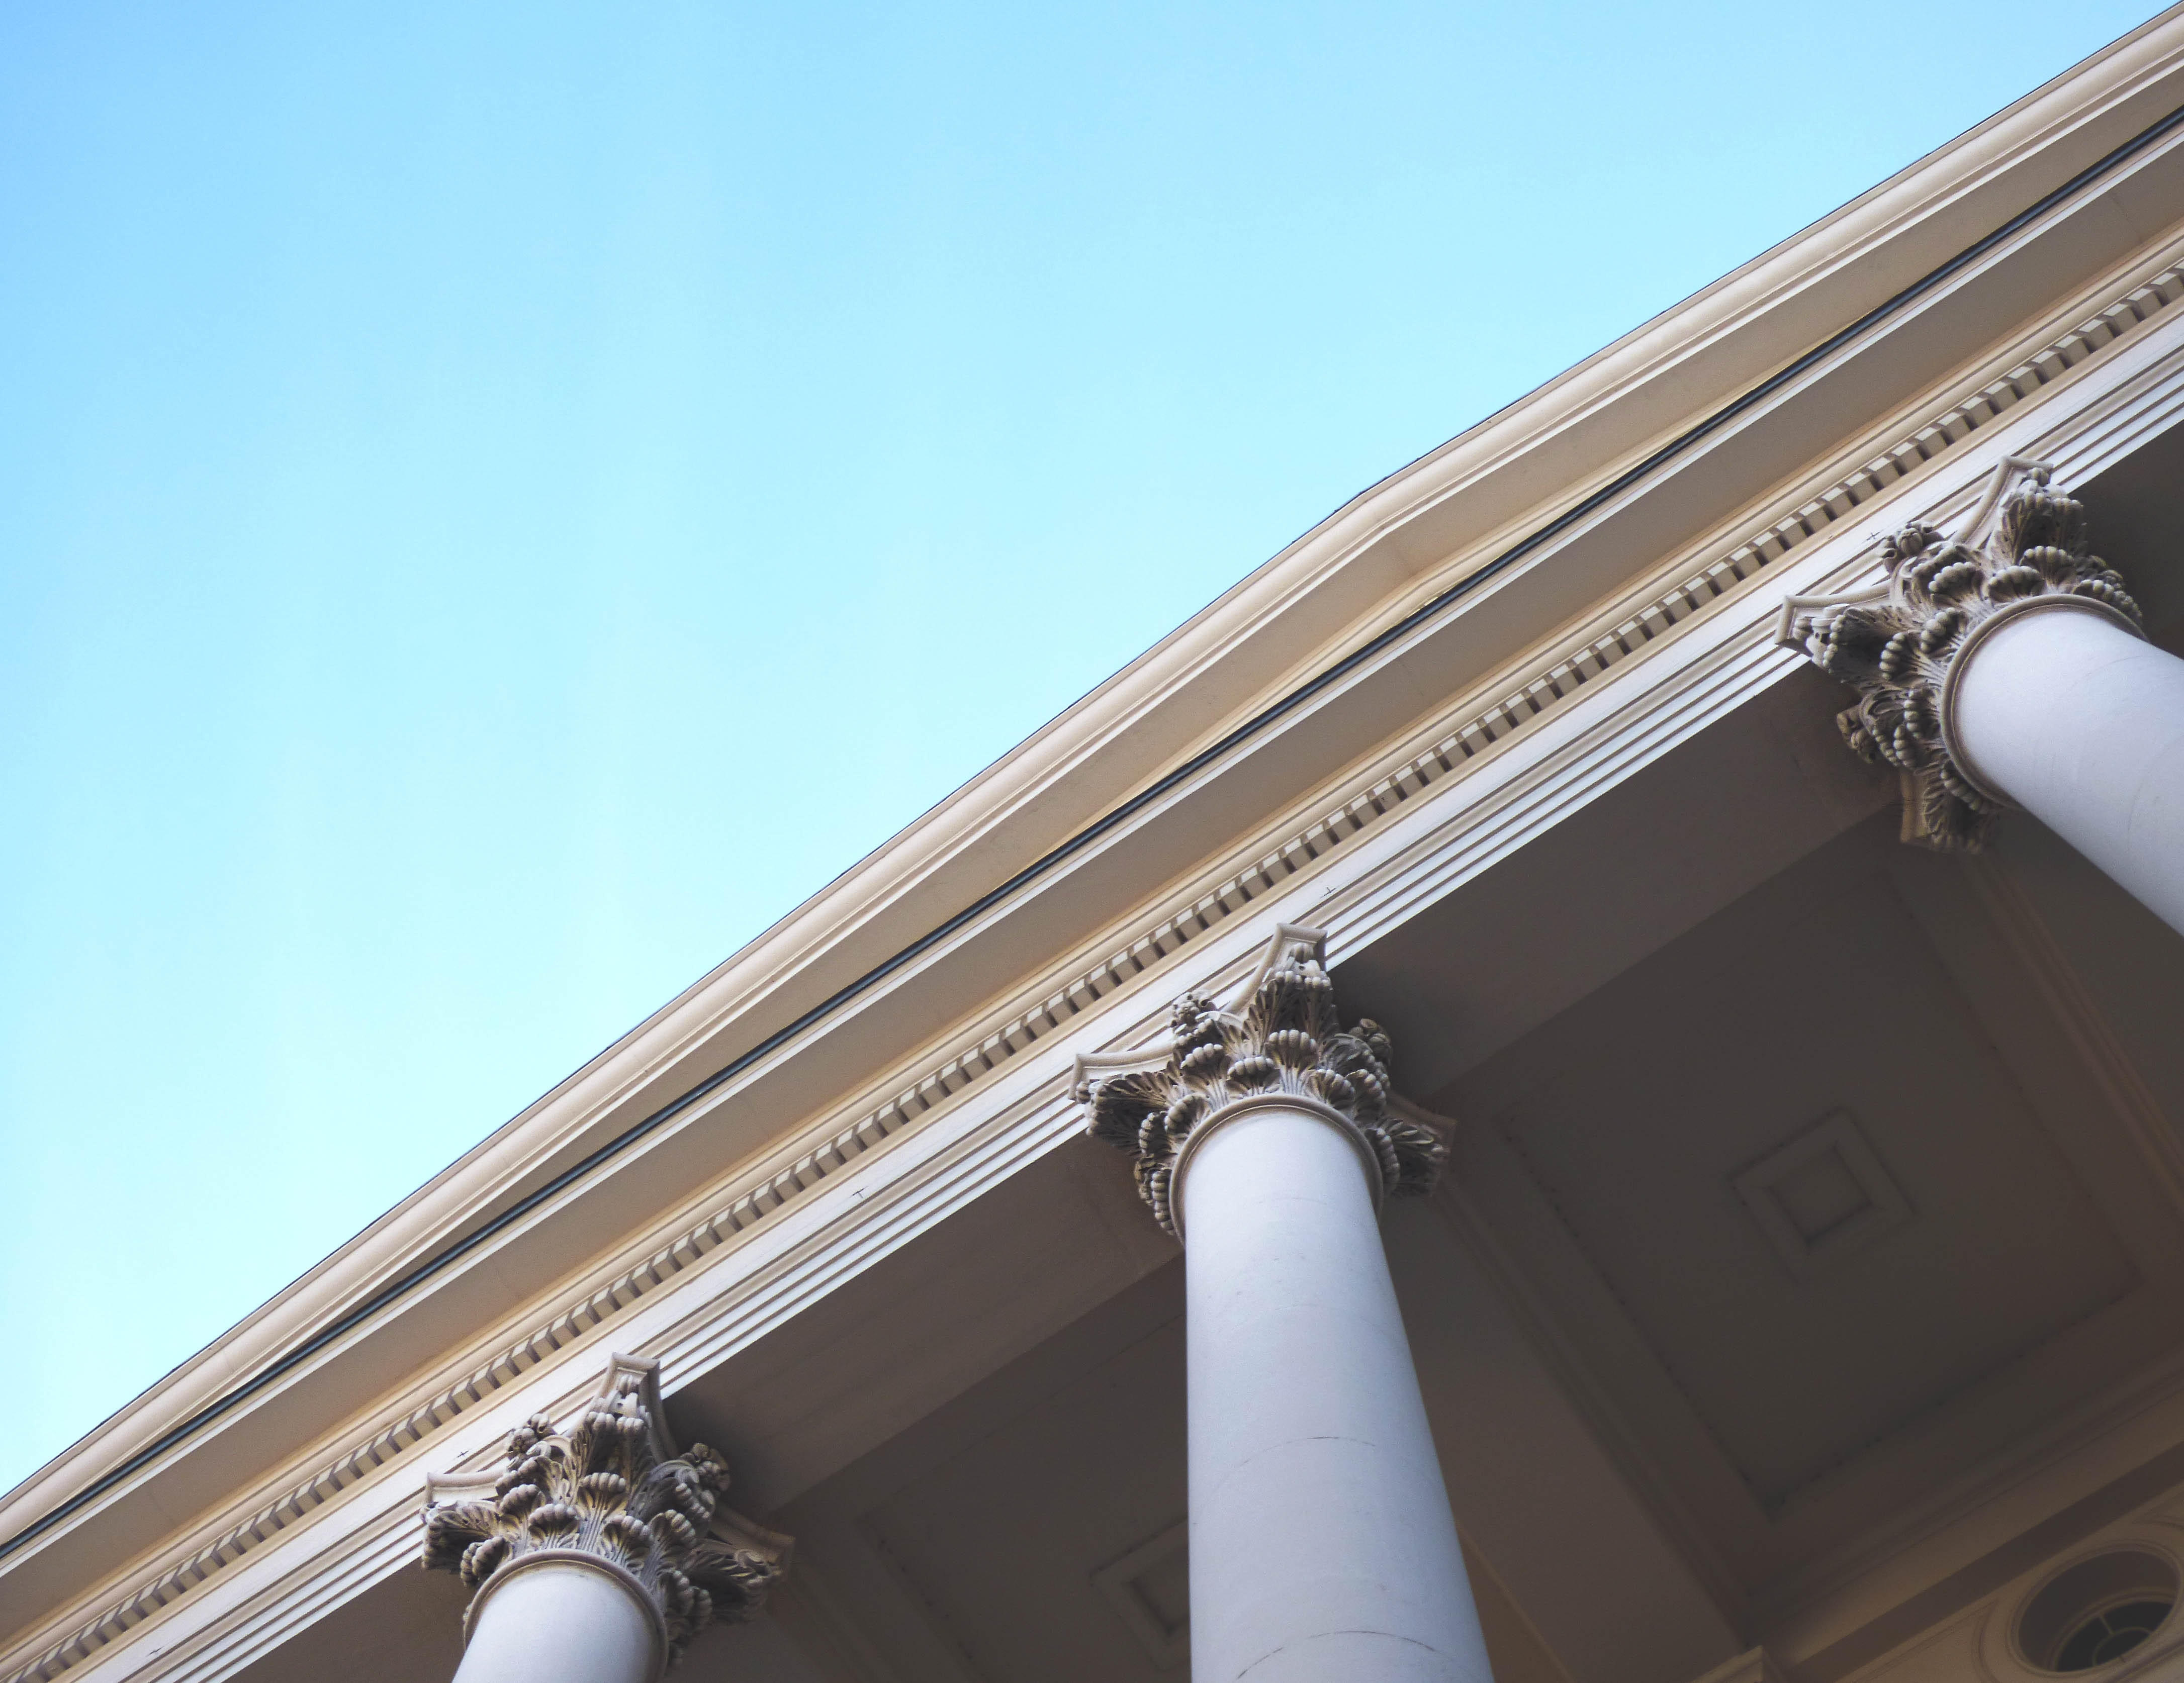 White Painted Pillars, Architectural design, Architecture, Blue sky, Building, HQ Photo